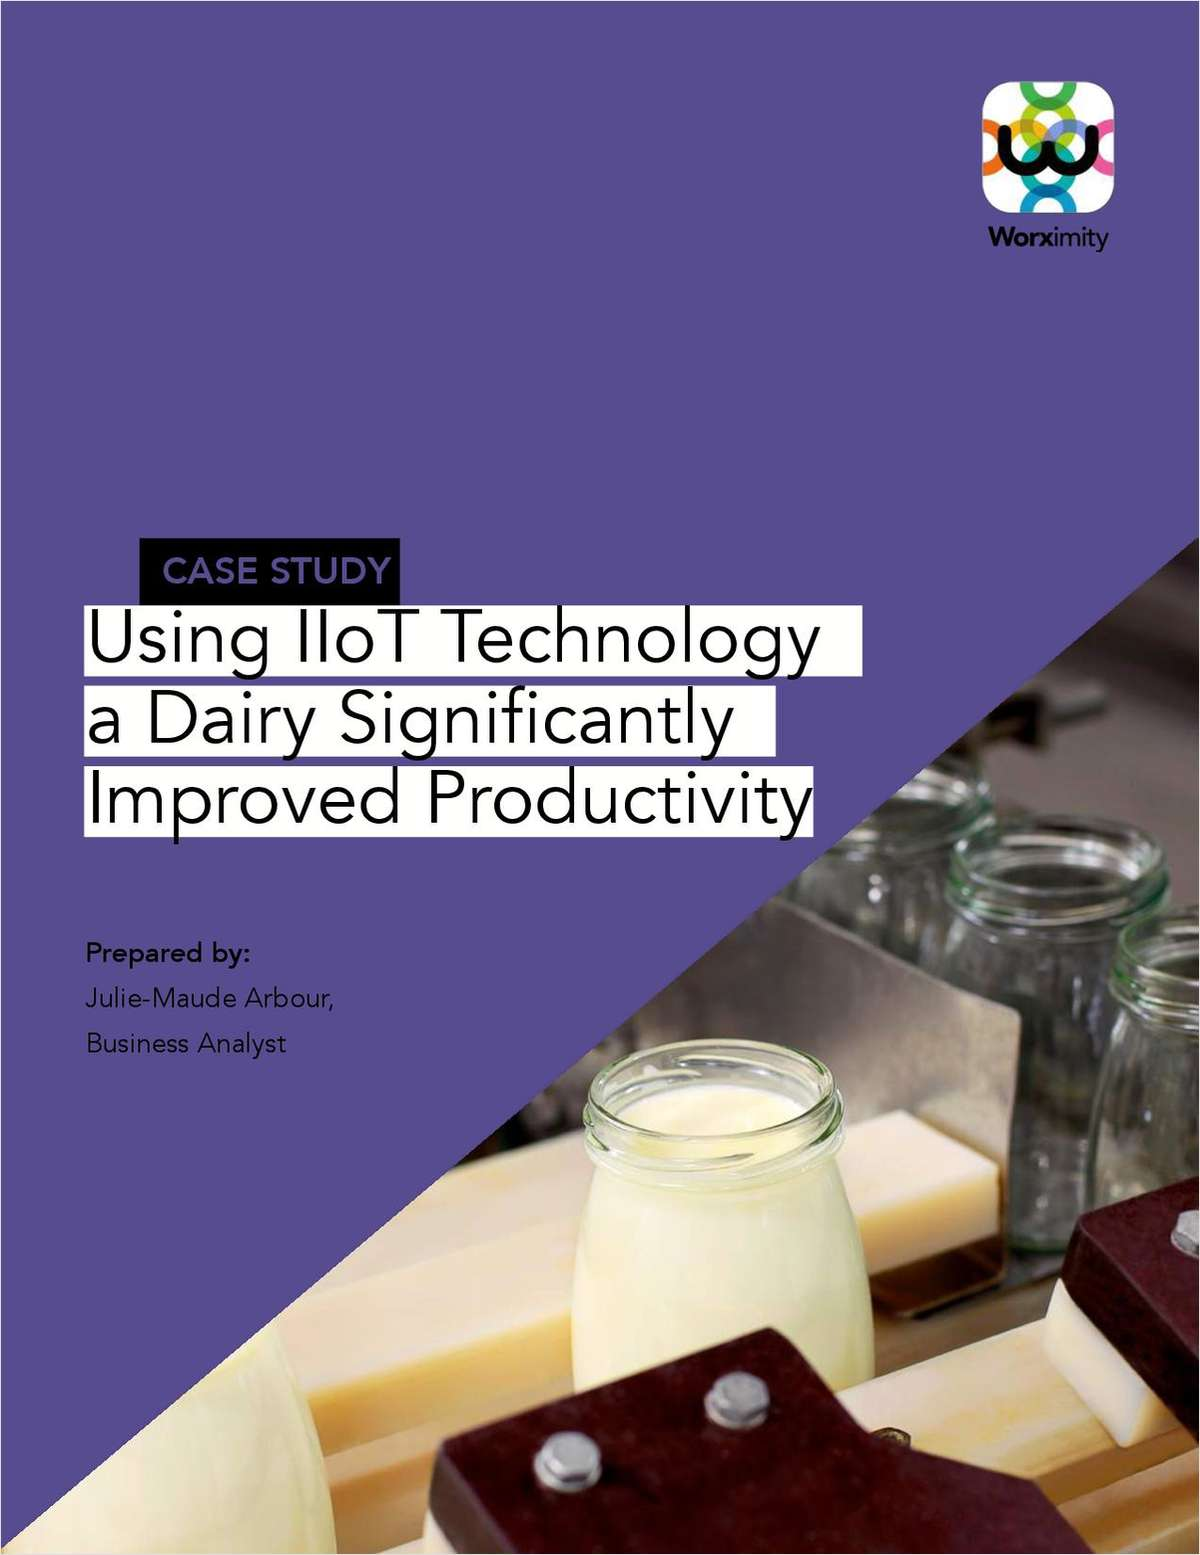 Using IIoT Technology a Dairy Significantly Improved Productivity